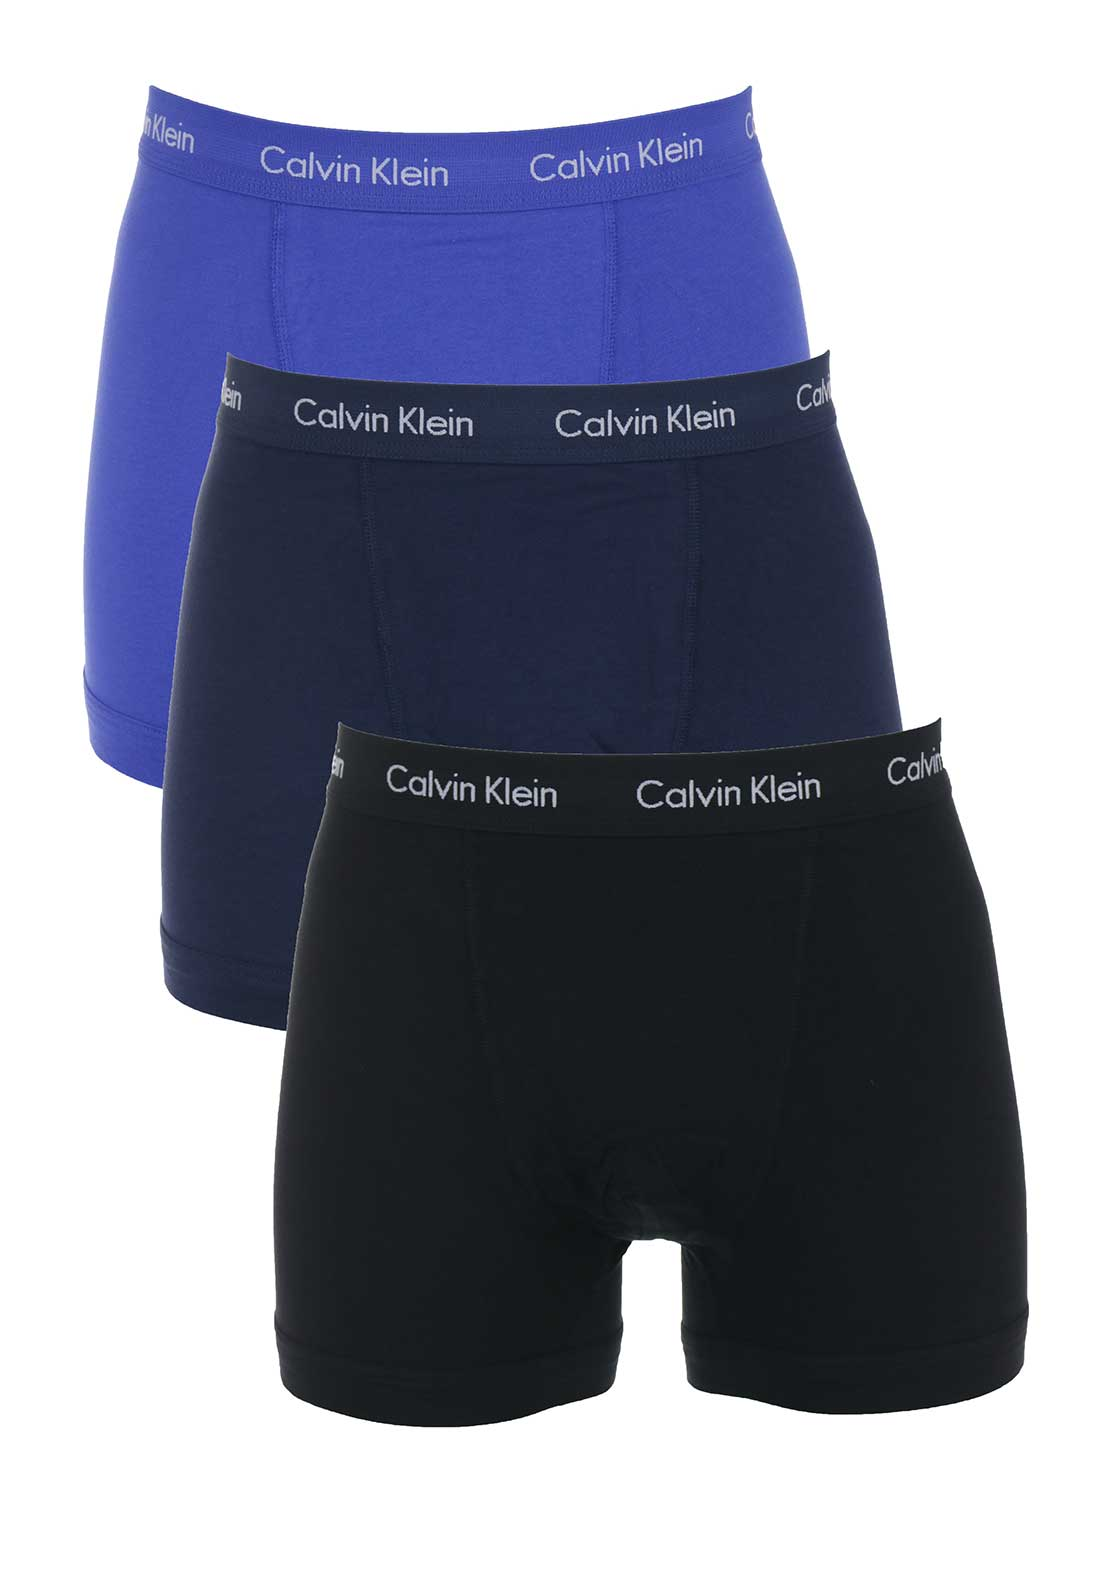 Calvin Klein 3 Pack Boxer Trunks, Multi-Coloured